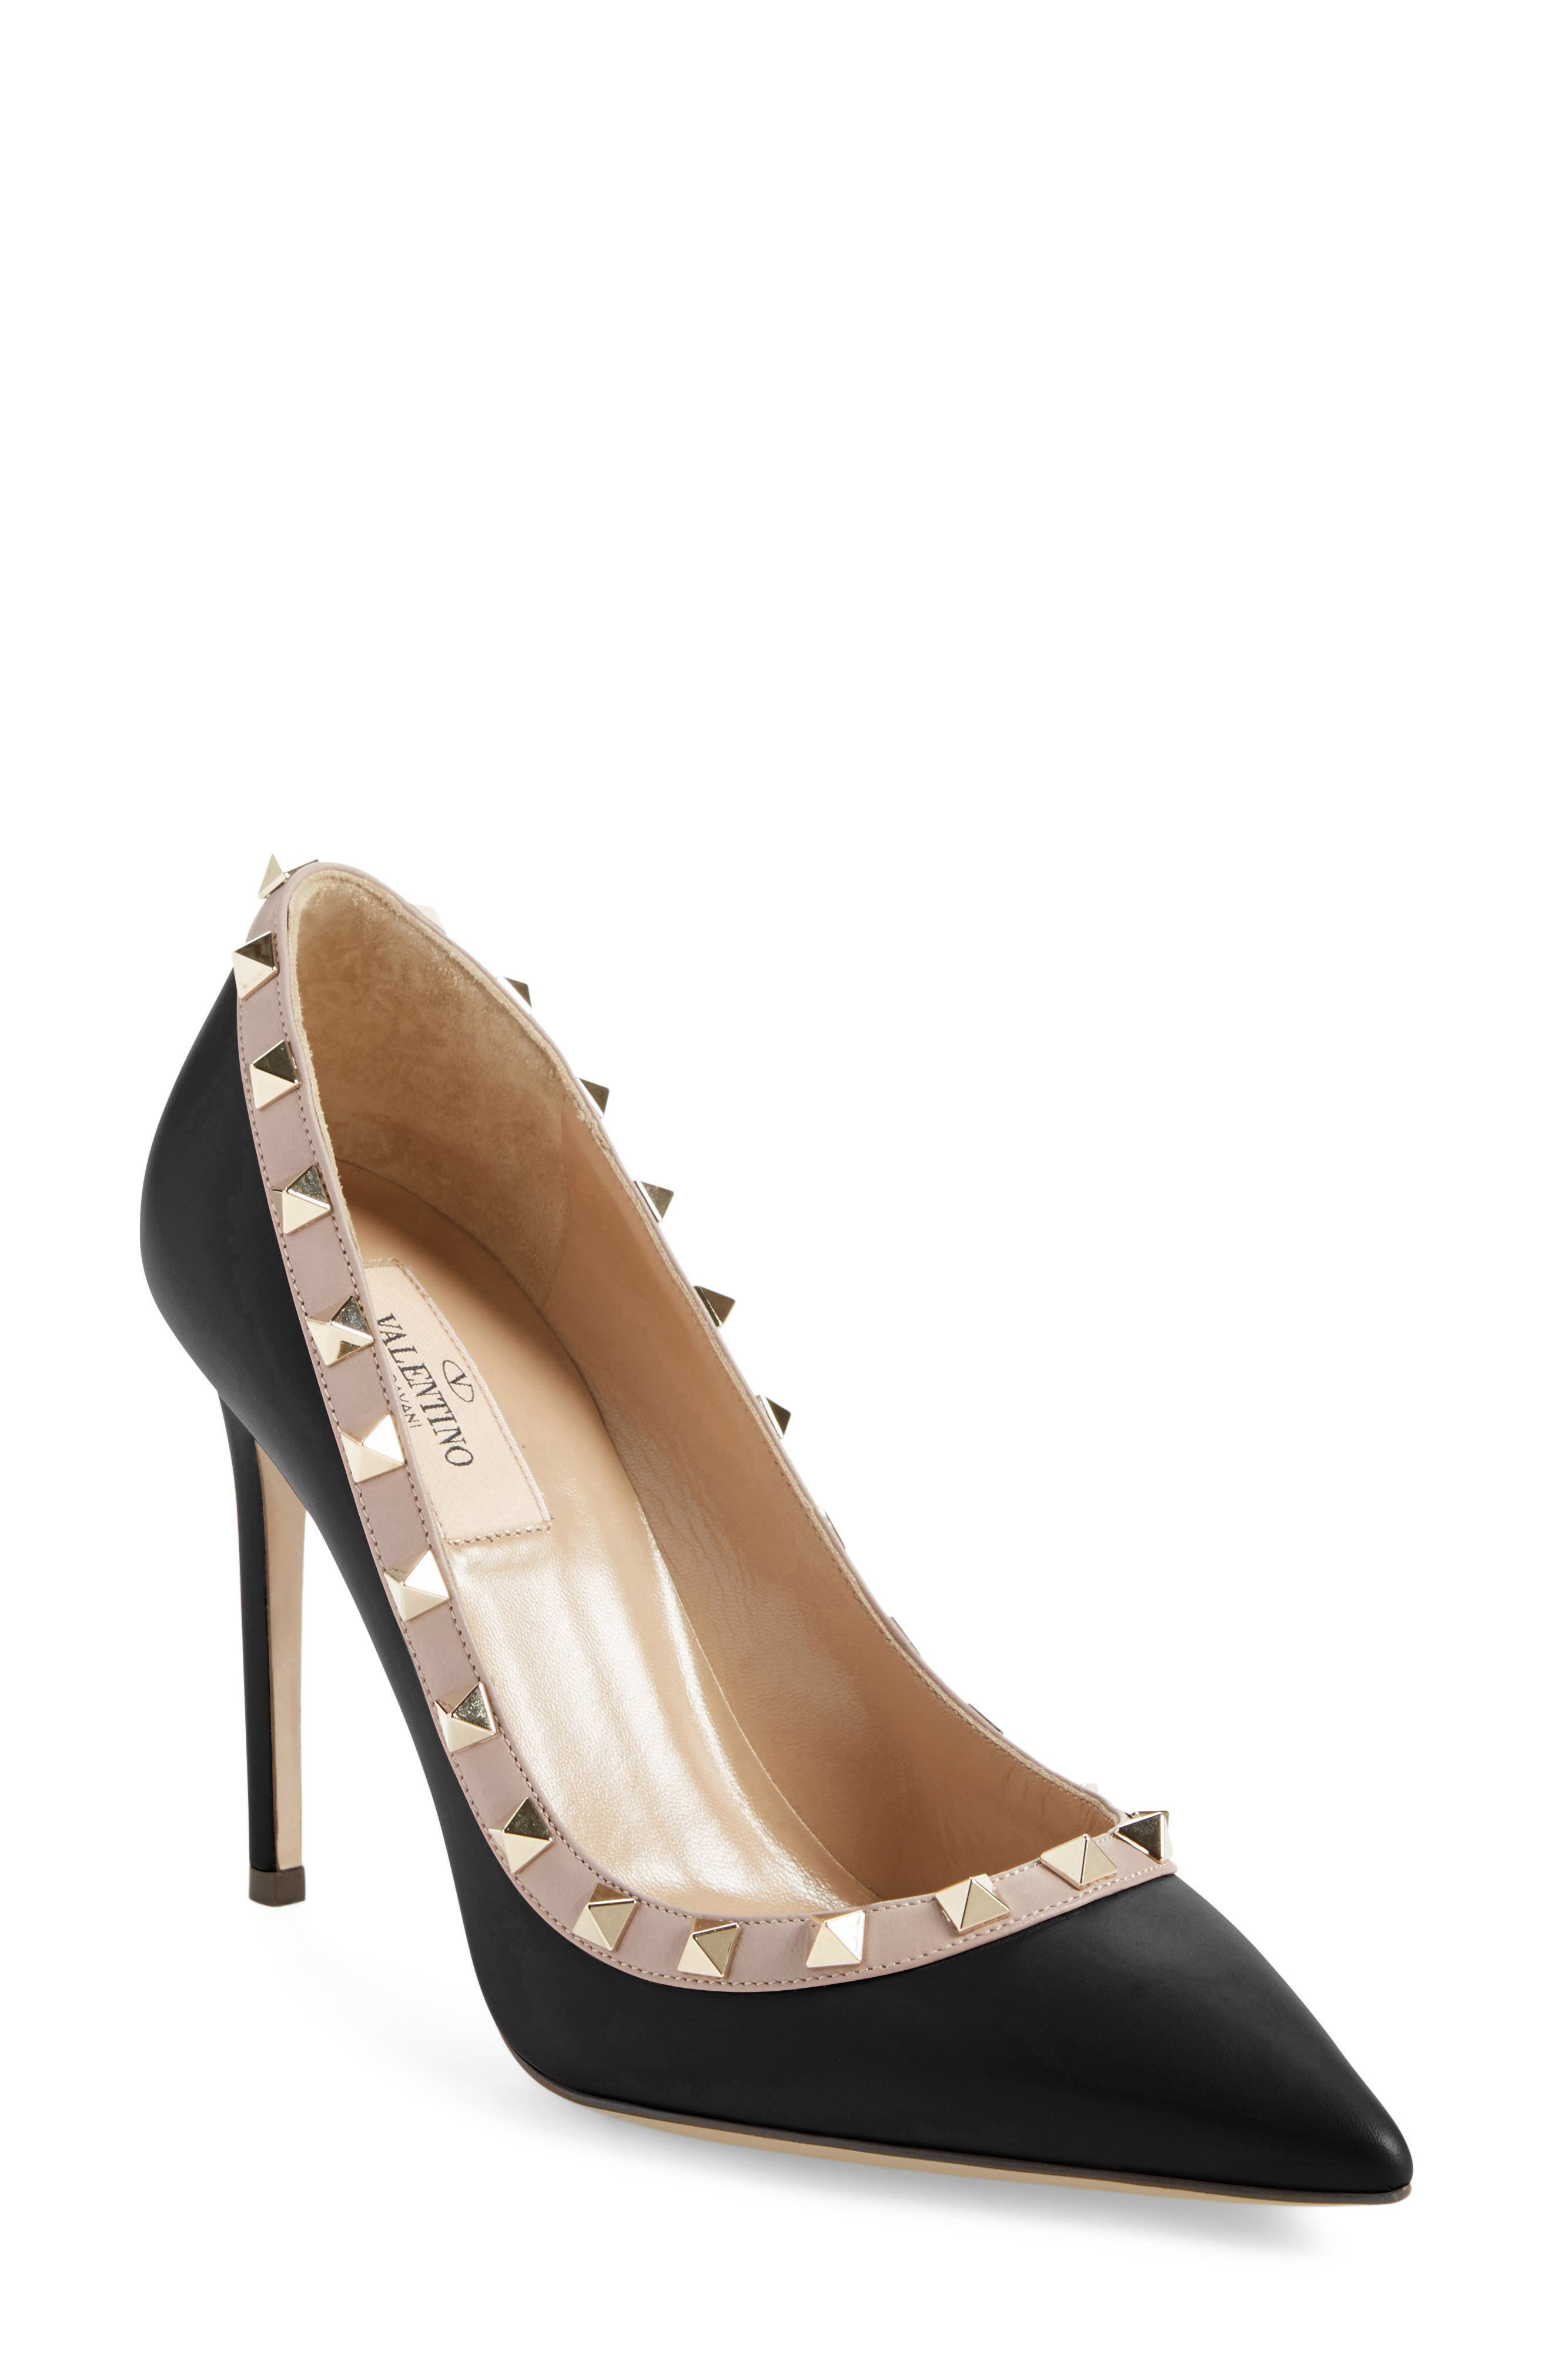 VALENTINO GARAVANI, Rockstud Pointy Toe Pump, Main thumbnail 1, color, BLACK/ NUDE LEATHER